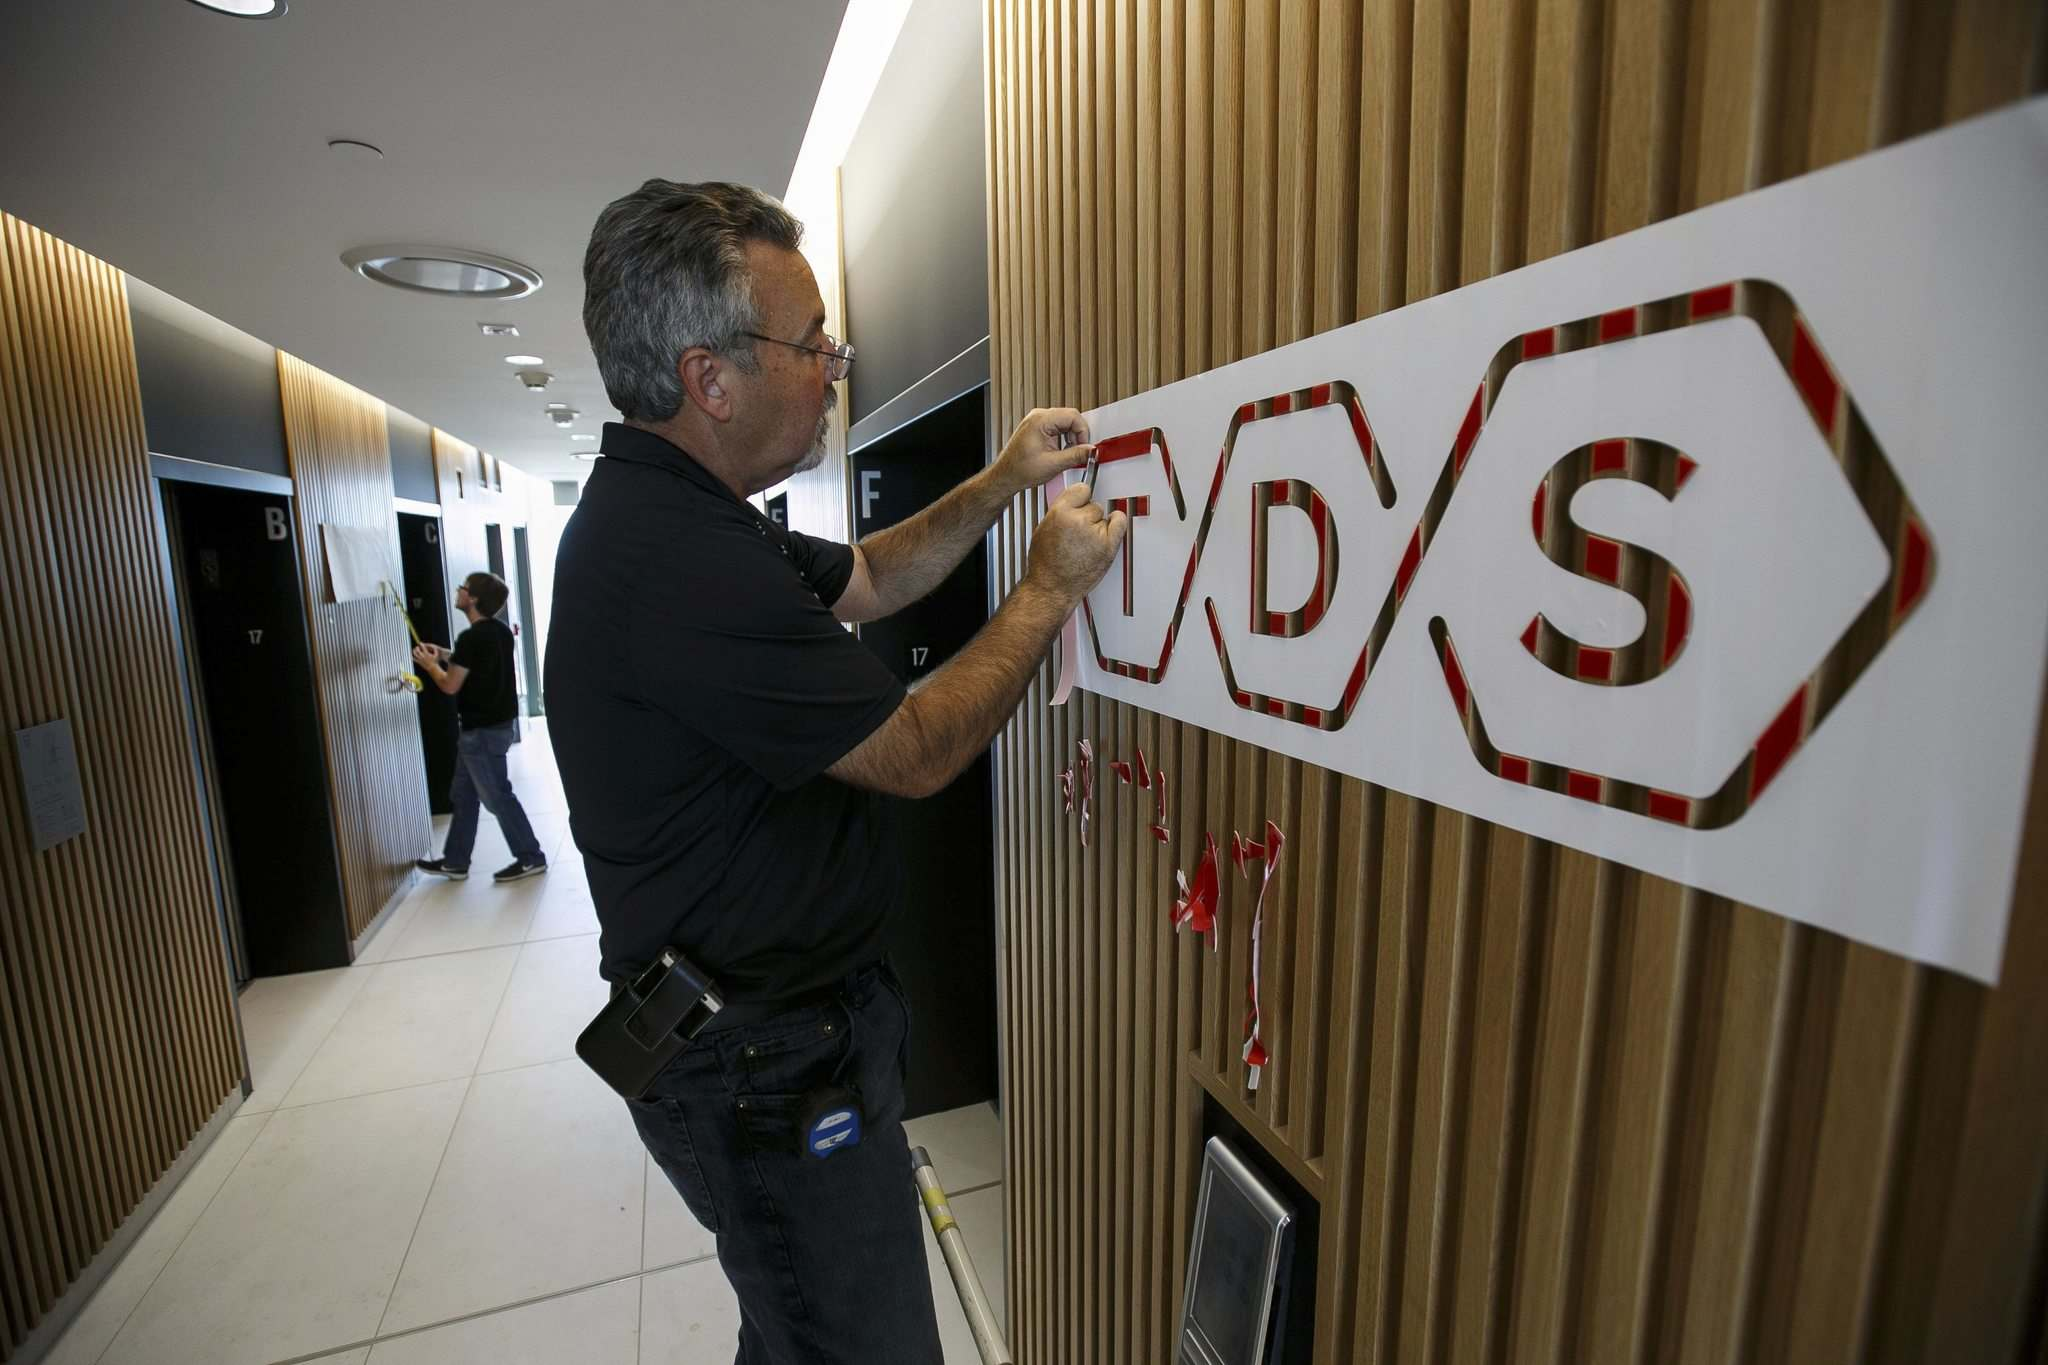 Larry Neudorf installs the TDS law firm logo in the elevator lobby on the 17th floor of their new offices. (Mike Deal / Winnipeg Free Press)</p>